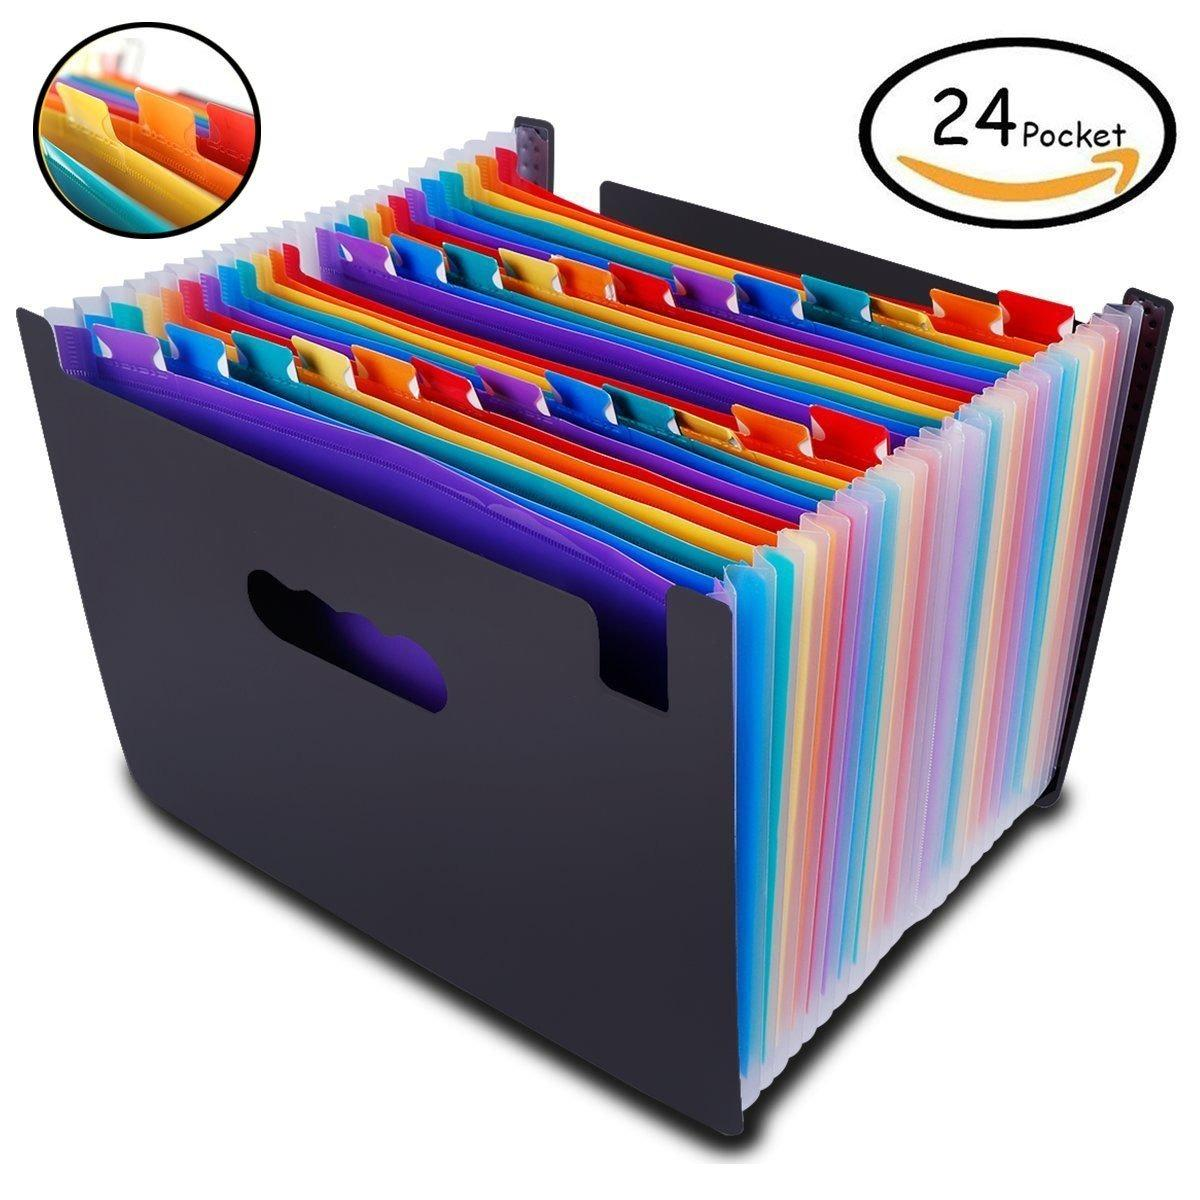 Retail Expanding File Folder Large Plastic Rainbow Expandable File Organizer Self Standing Accordion A4 Document Folder Wallet Briefcase Business Filing Box 24 Pockets Intl